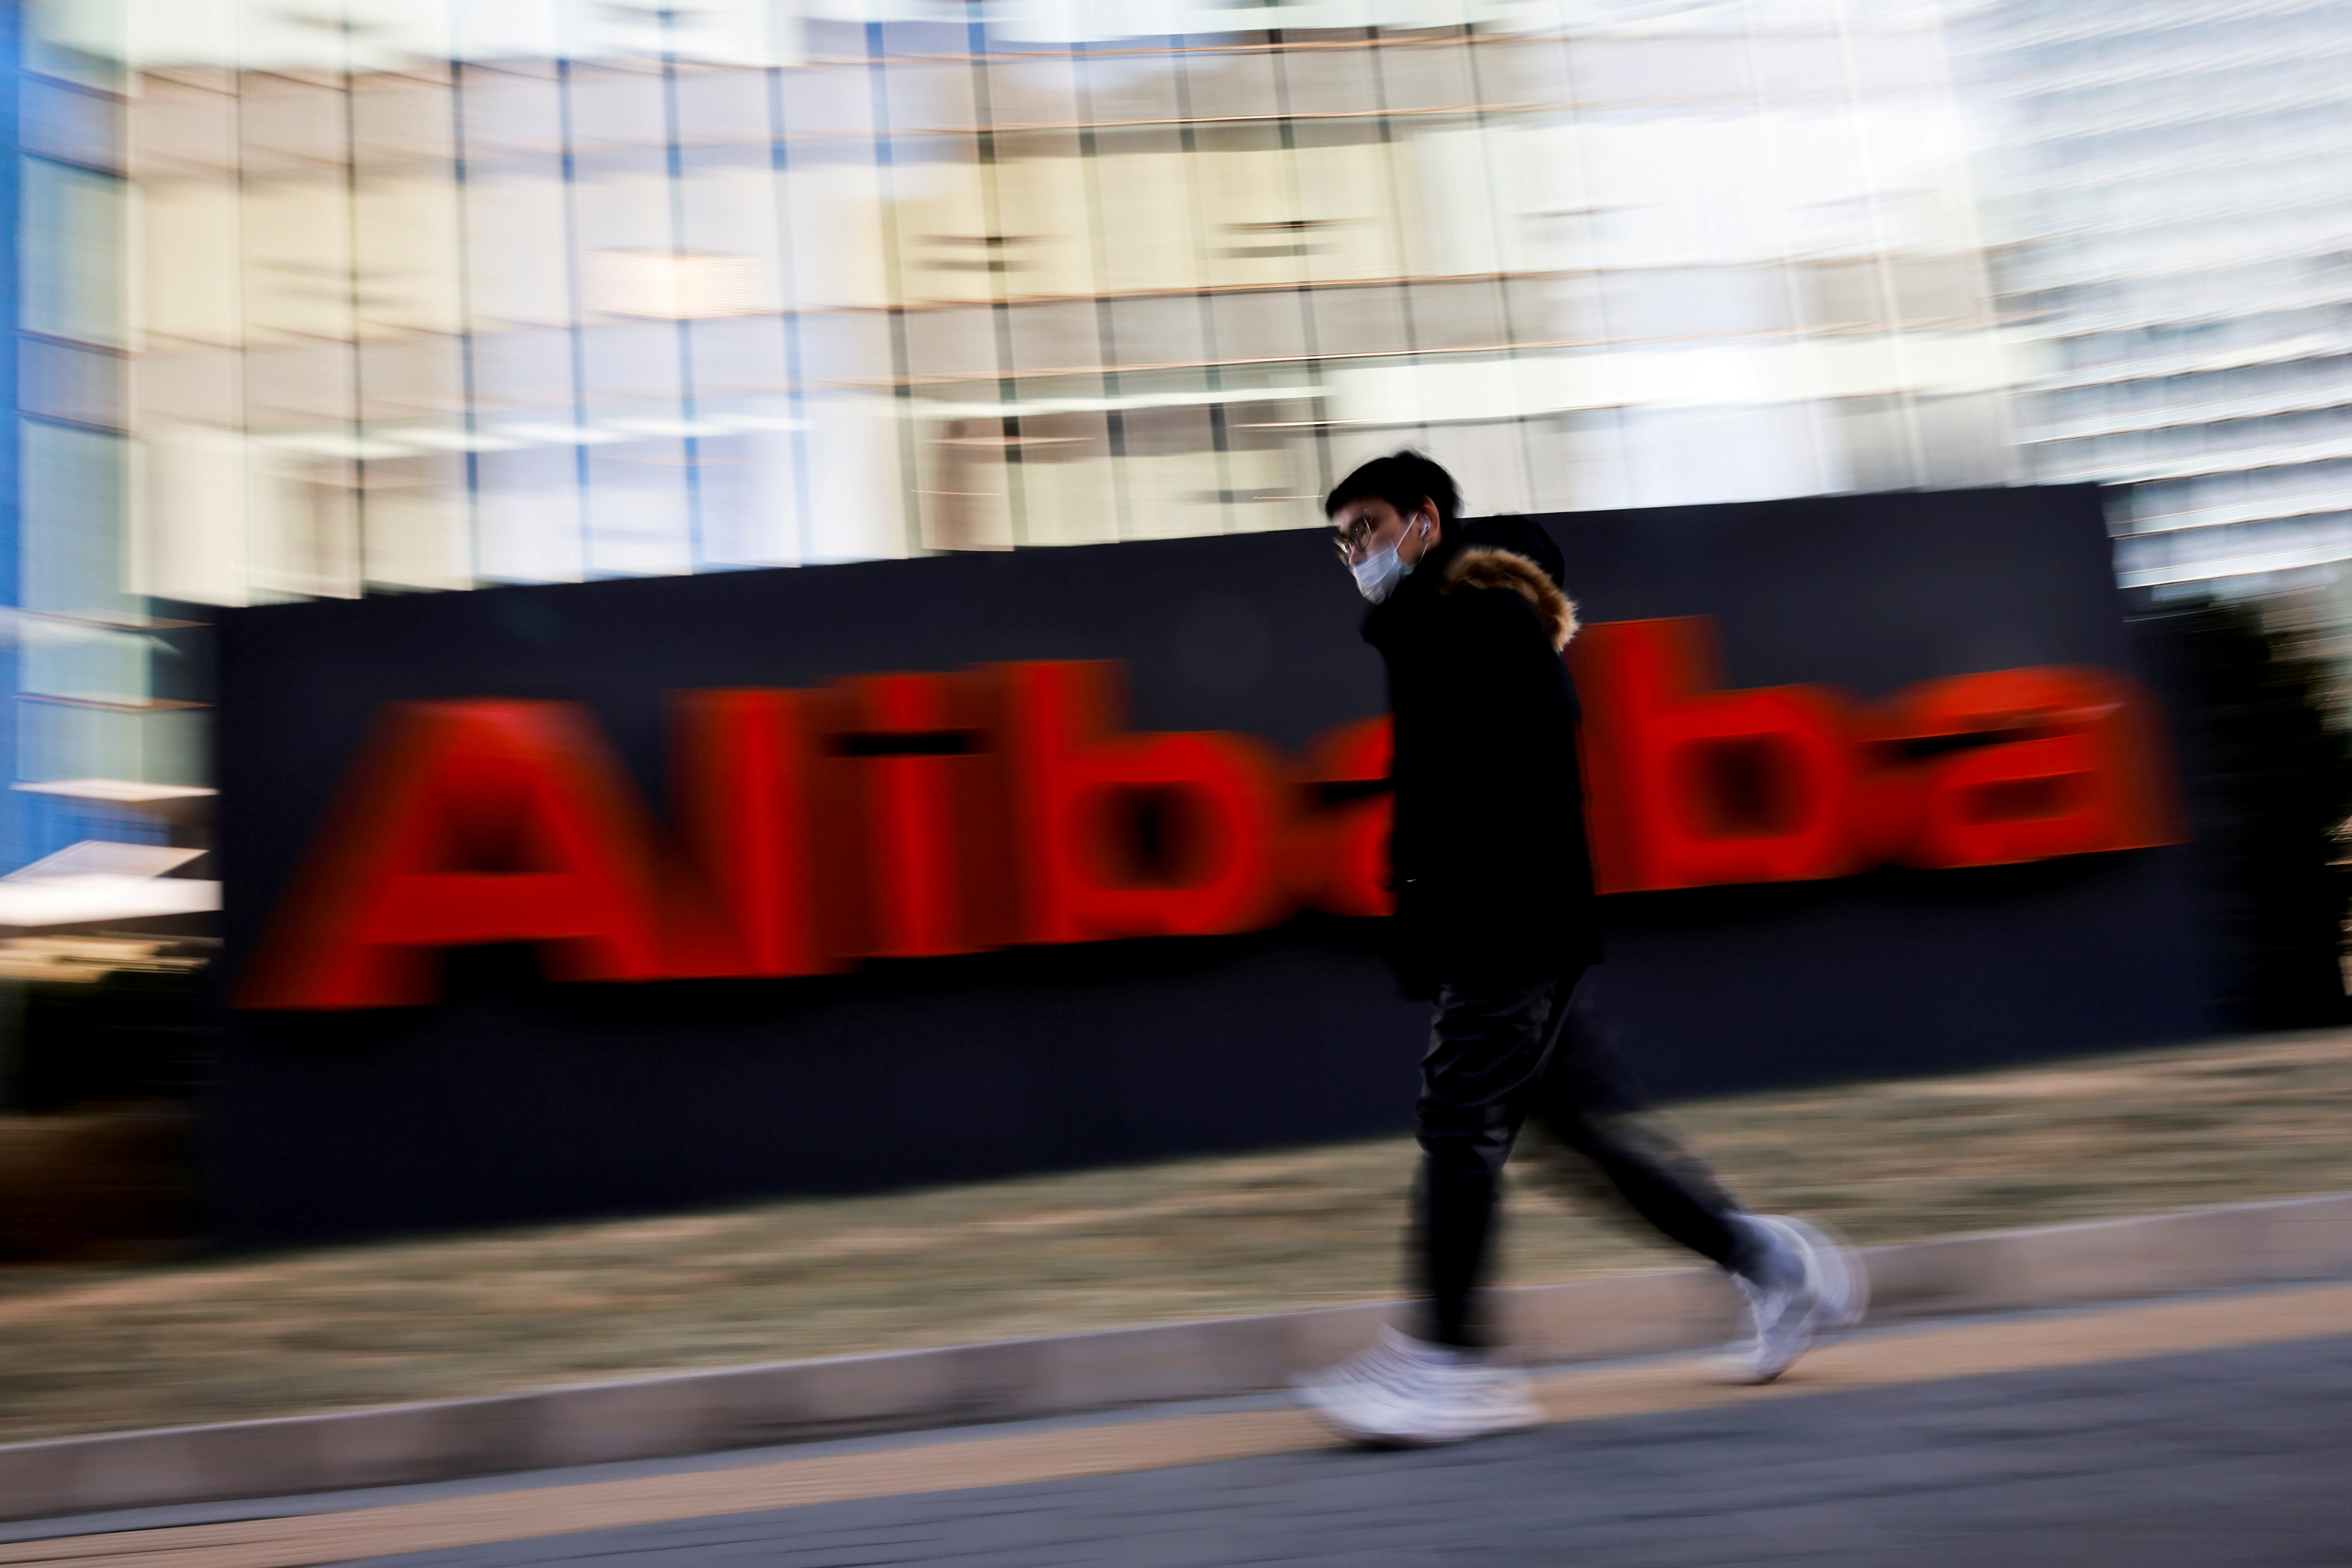 The logo of Alibaba Group is seen at its office in Beijing, China Jan. 5, 2021. REUTERS/Thomas Peter